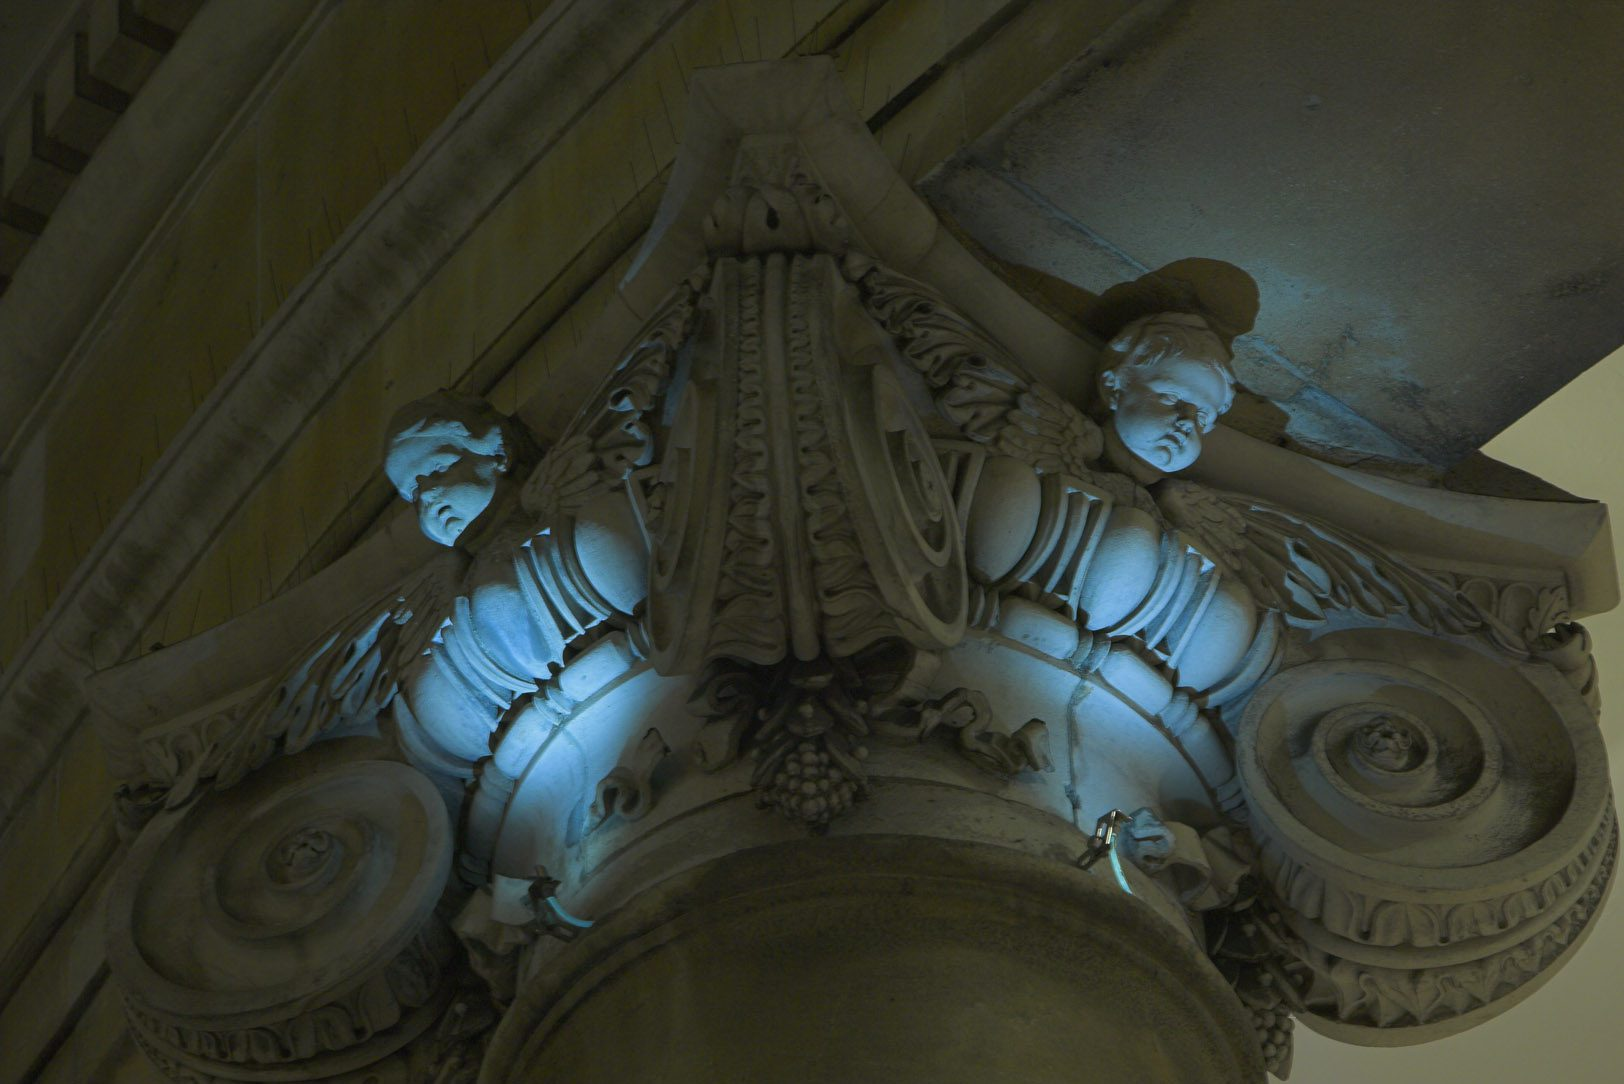 All Souls Church Architectural Lighting - Exterior and Interior Lighting for Buildings